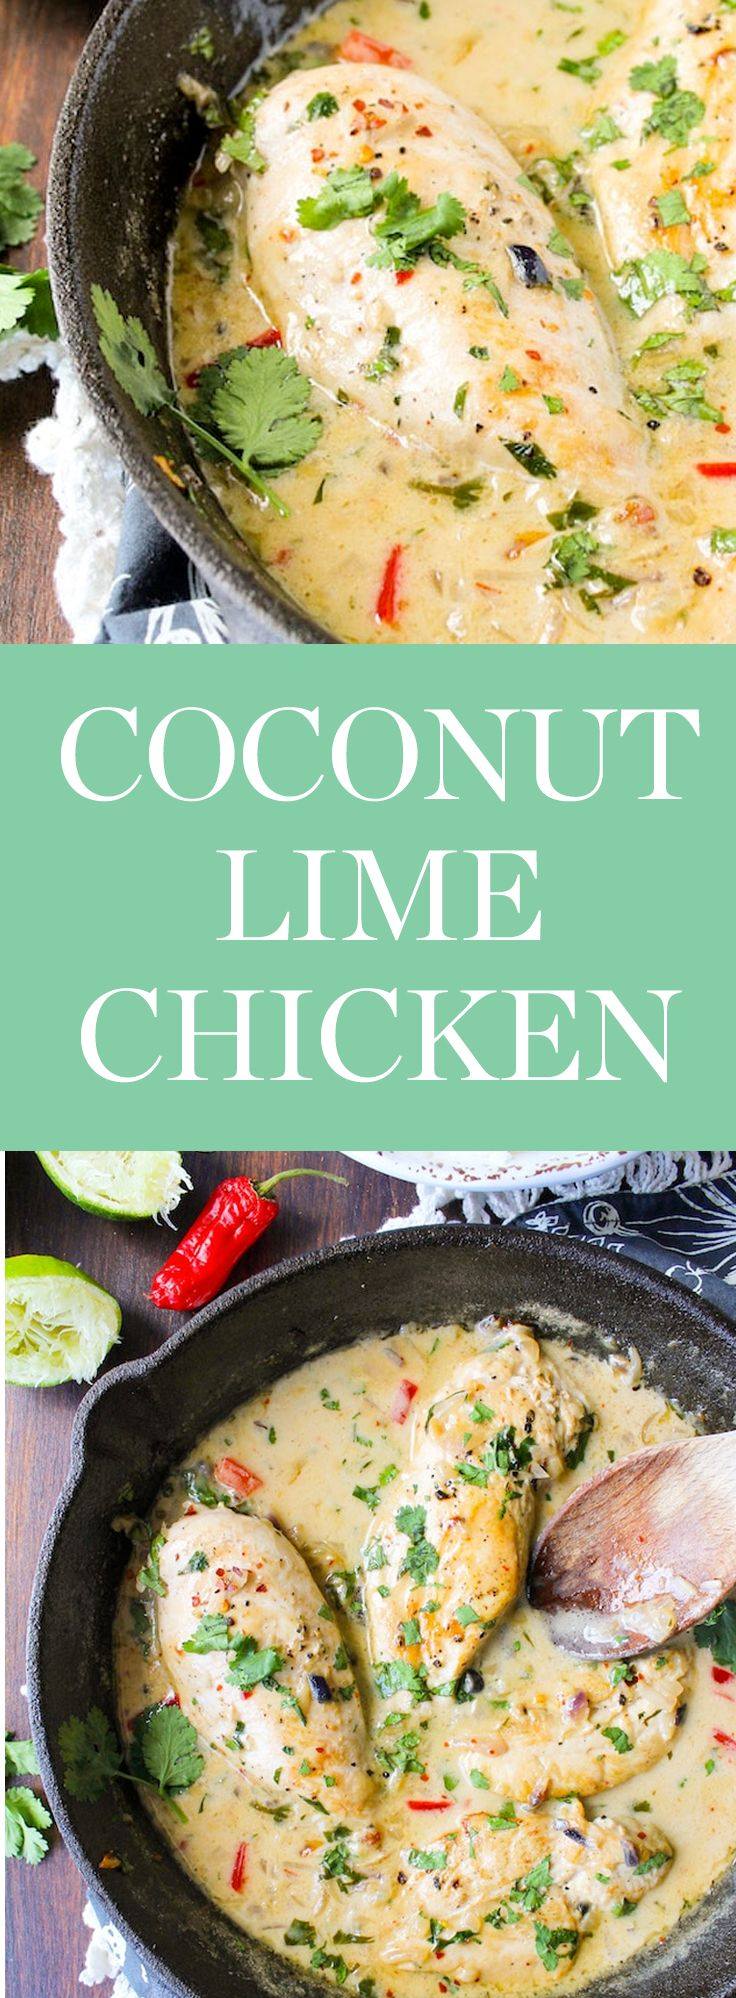 Try out this Coconut Lime Chicken recipe from A Saucy Kitchen and get 20 more whole 30 recipes you can eat all week long.